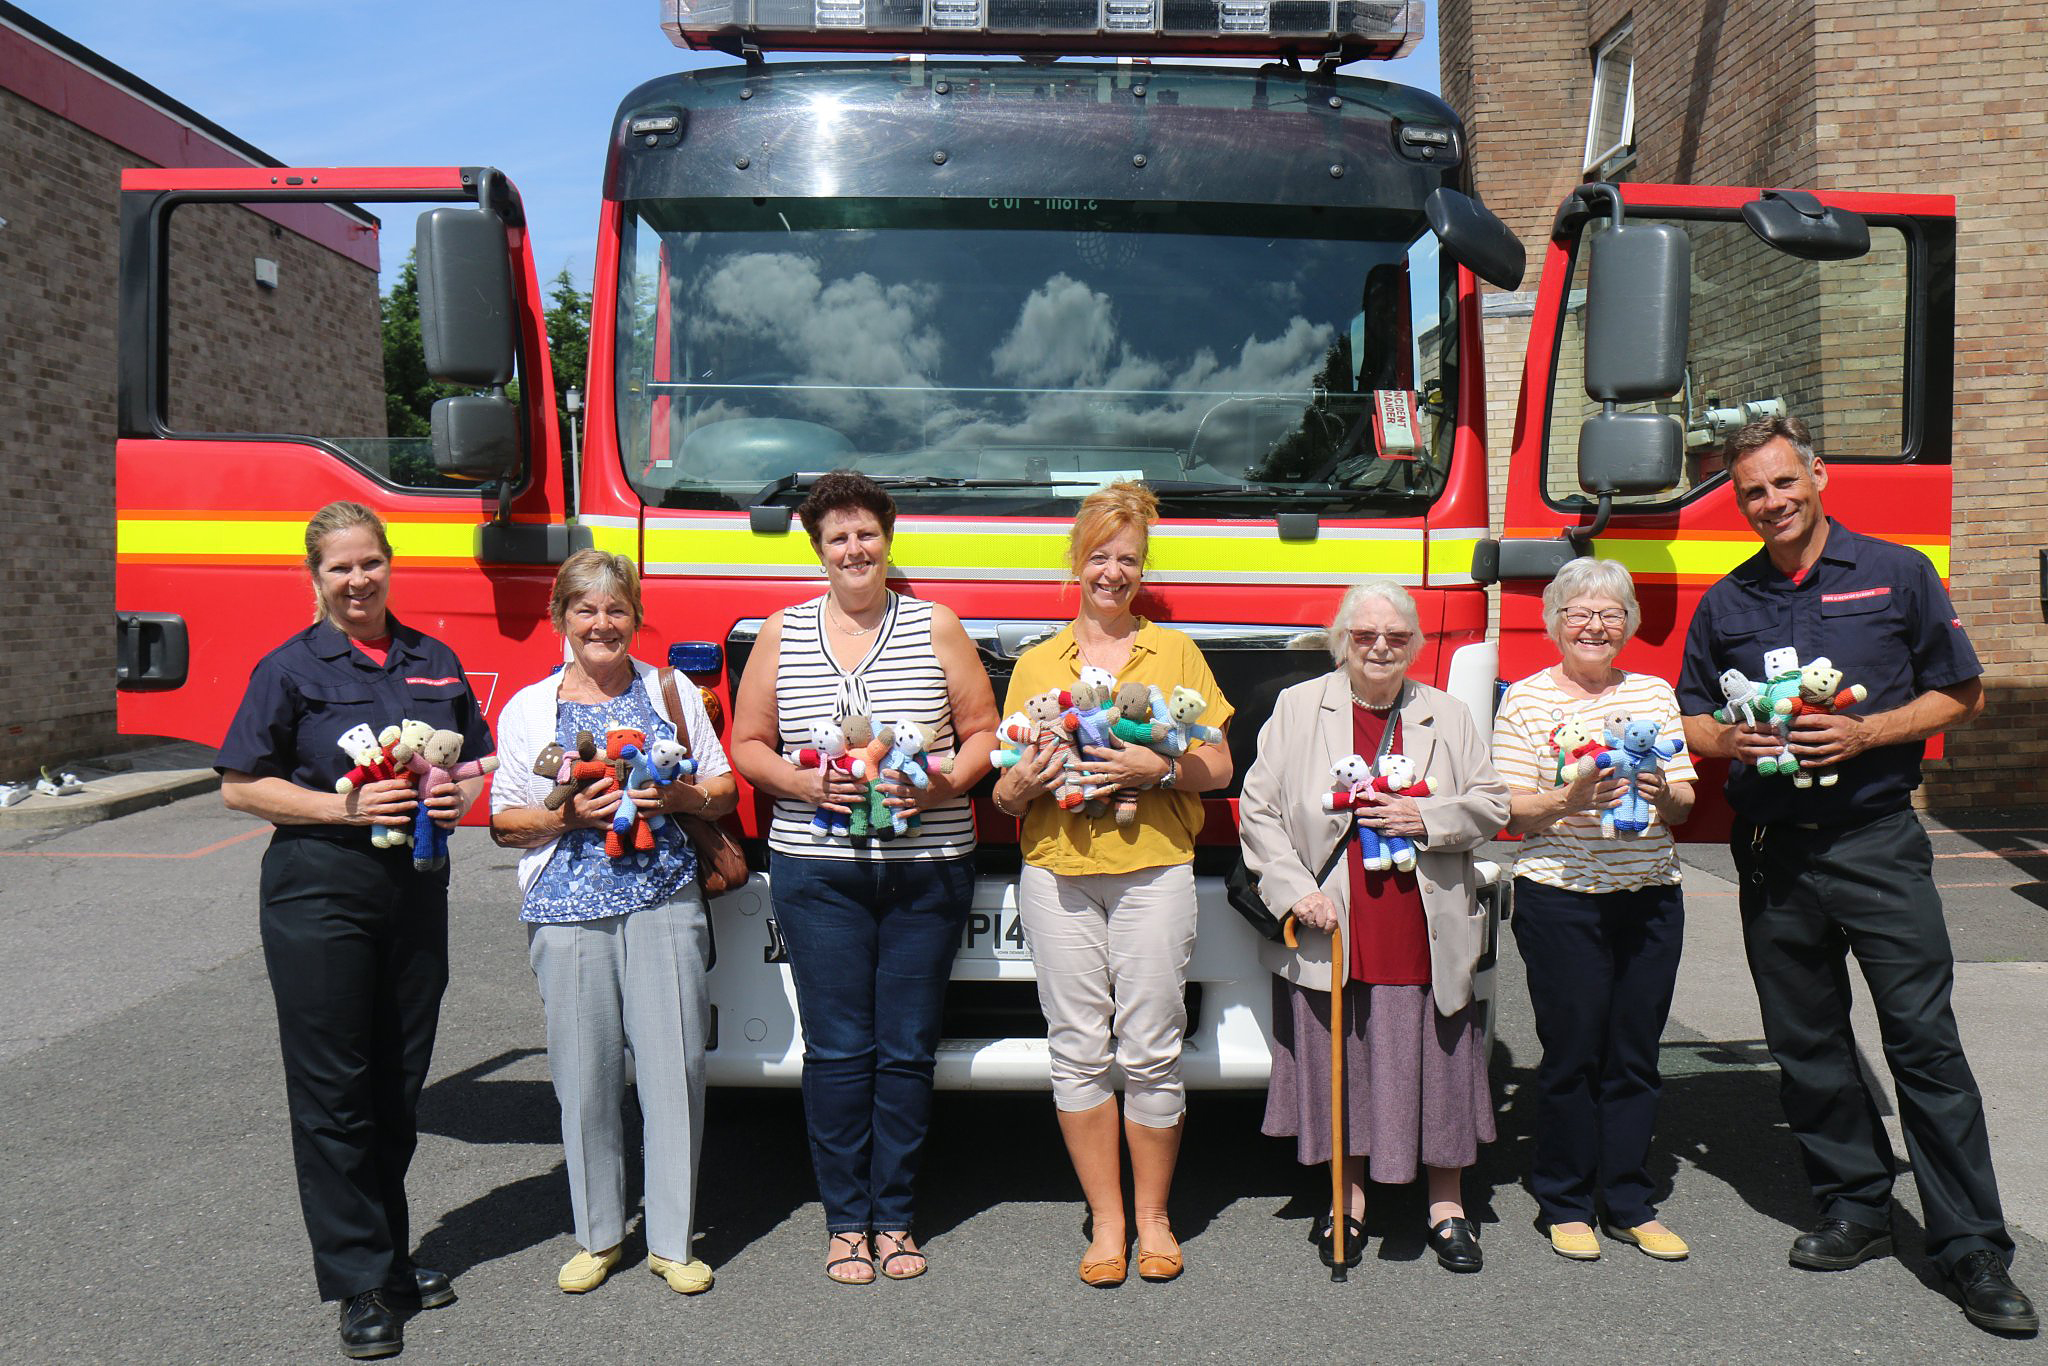 The Trauma Teddies handover (photo courtesy of Kingswood Fire Station)